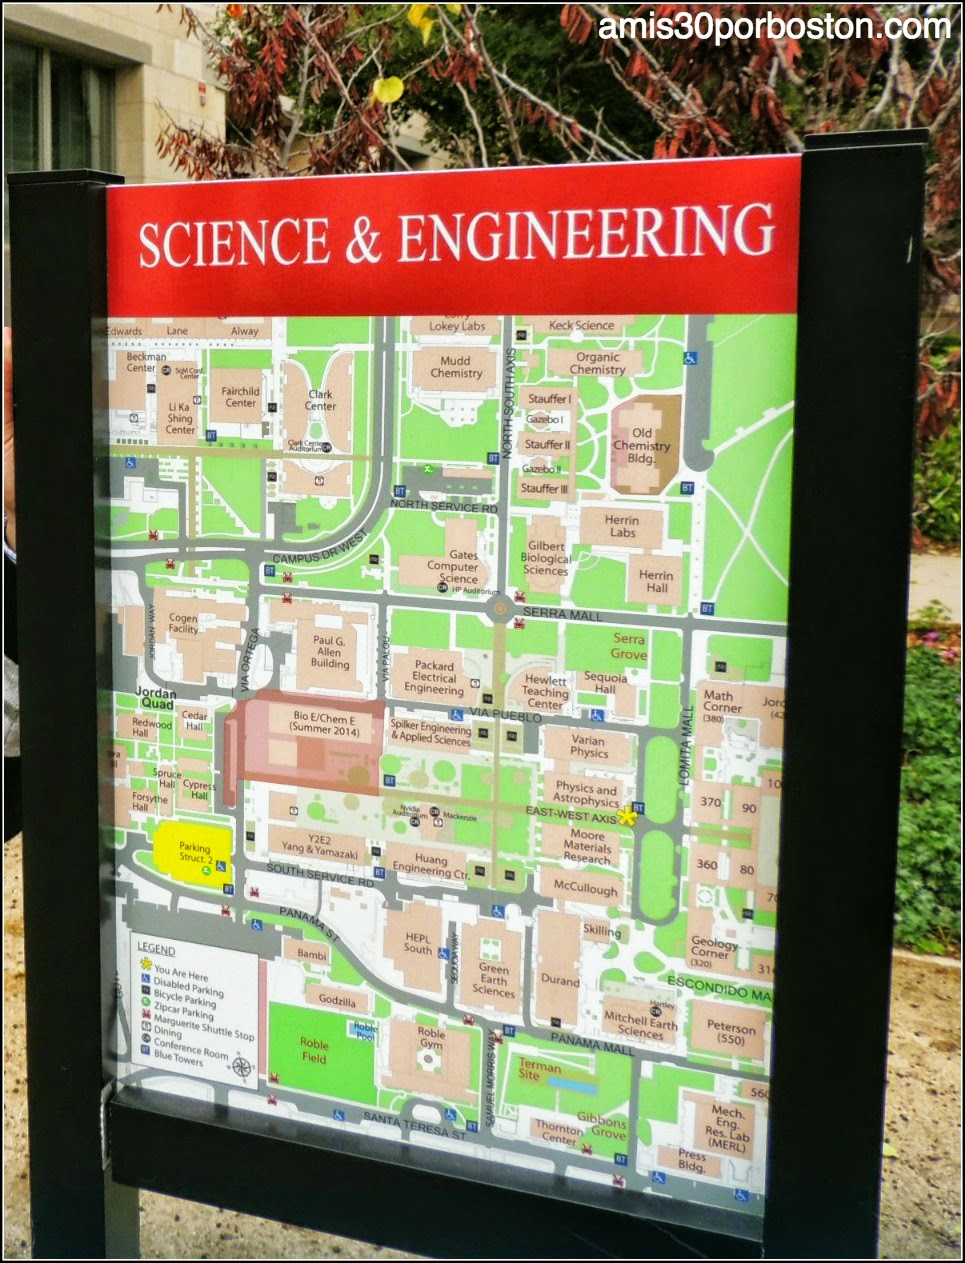 Universidad de Stanford: Science & Engineering